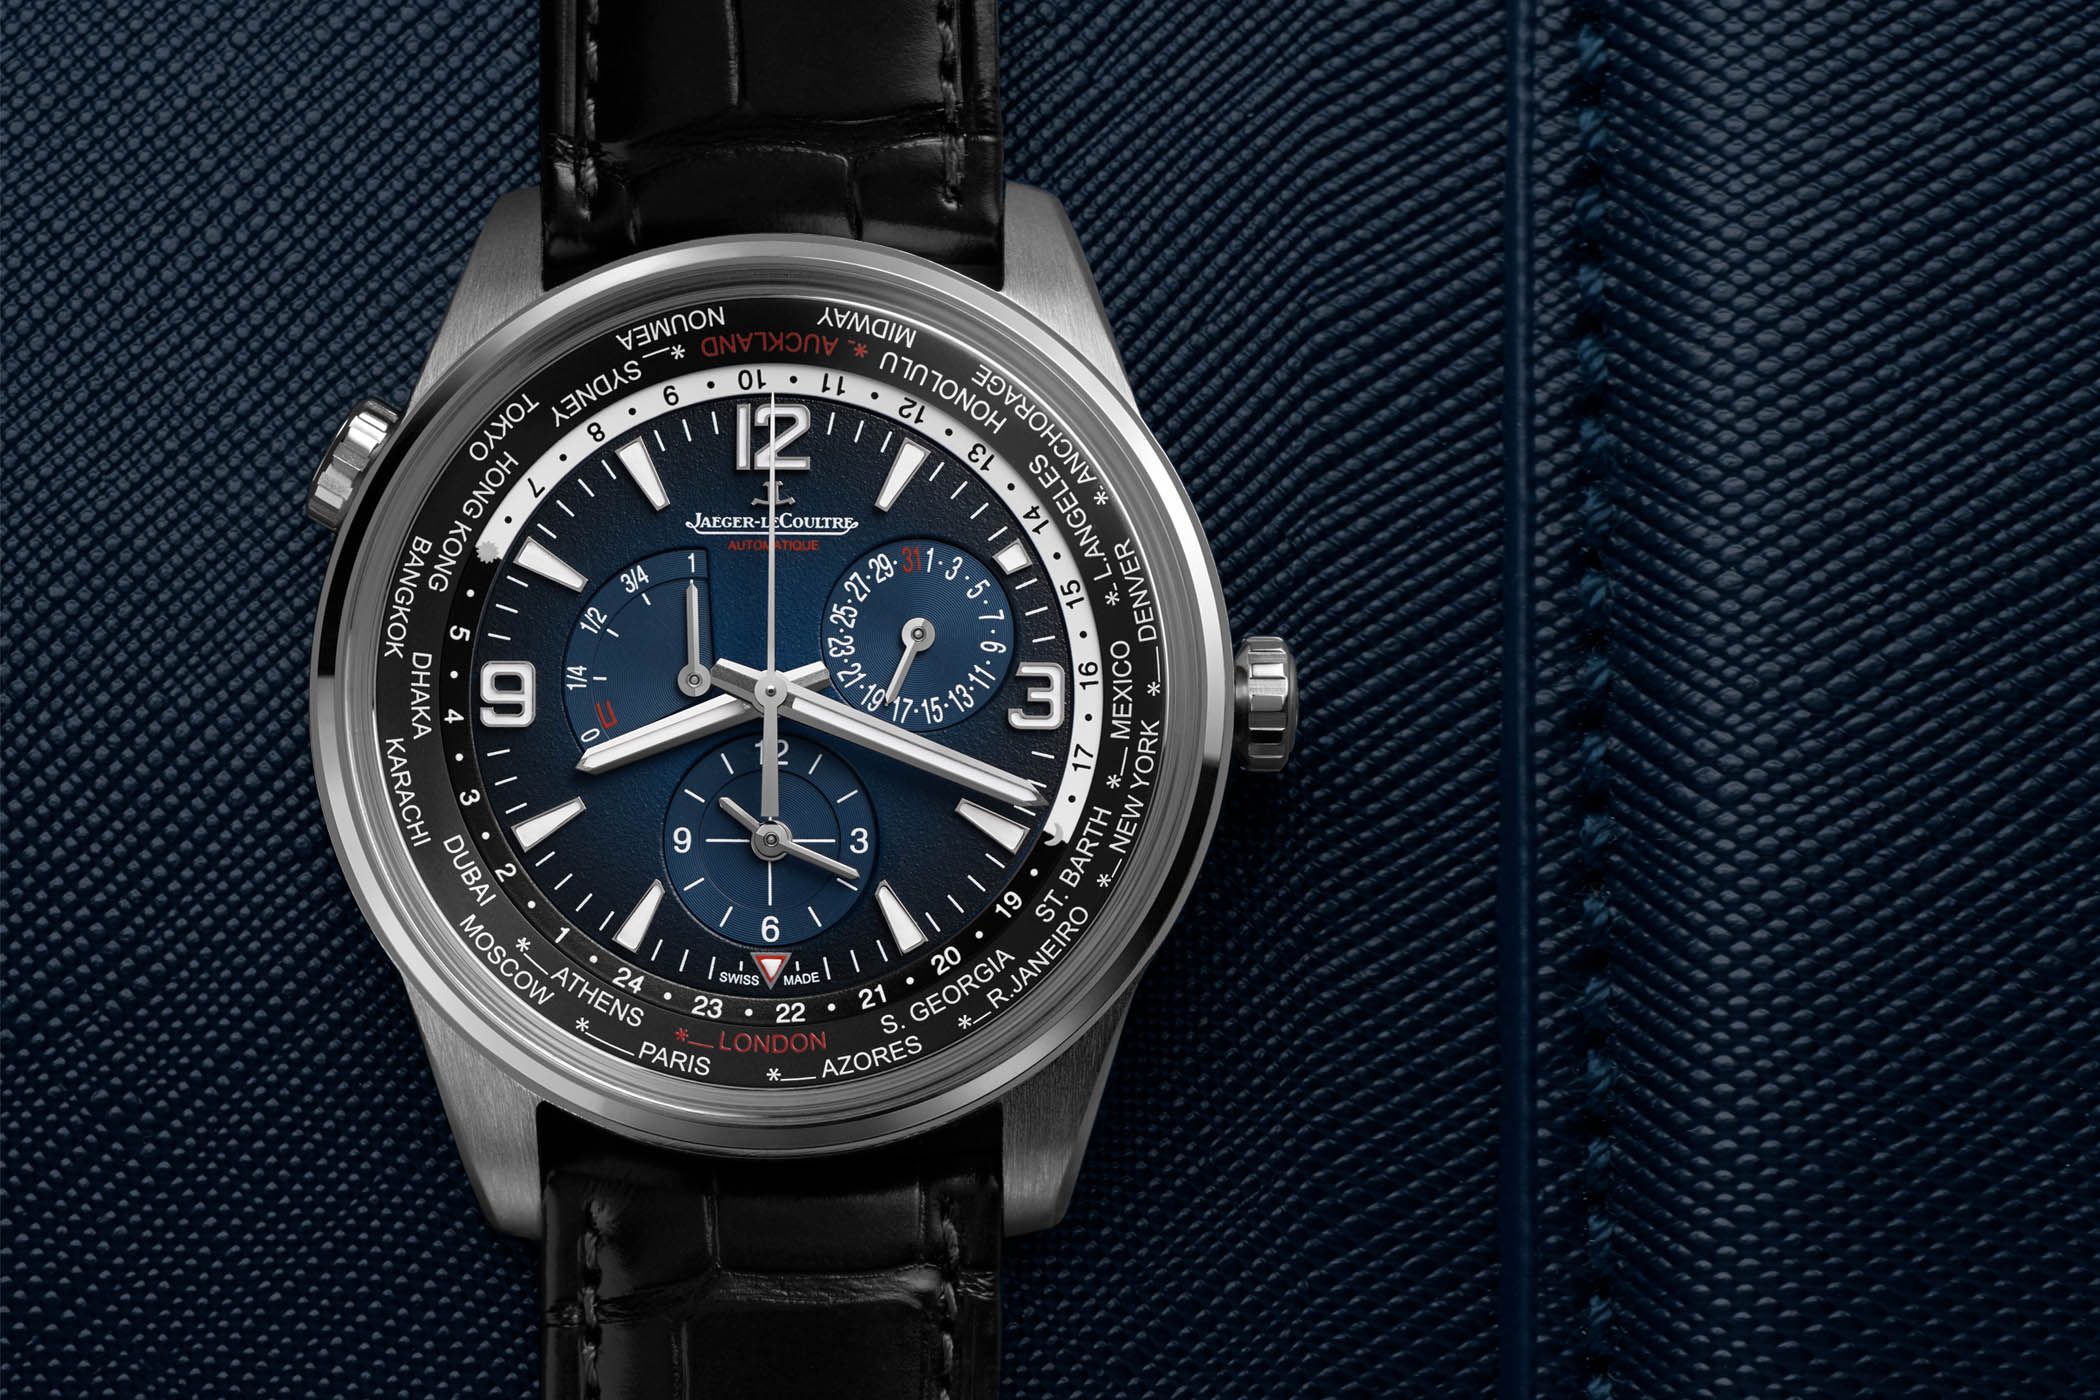 Jaeger-LeCoultre Polaris Geographic WT Limited Edition